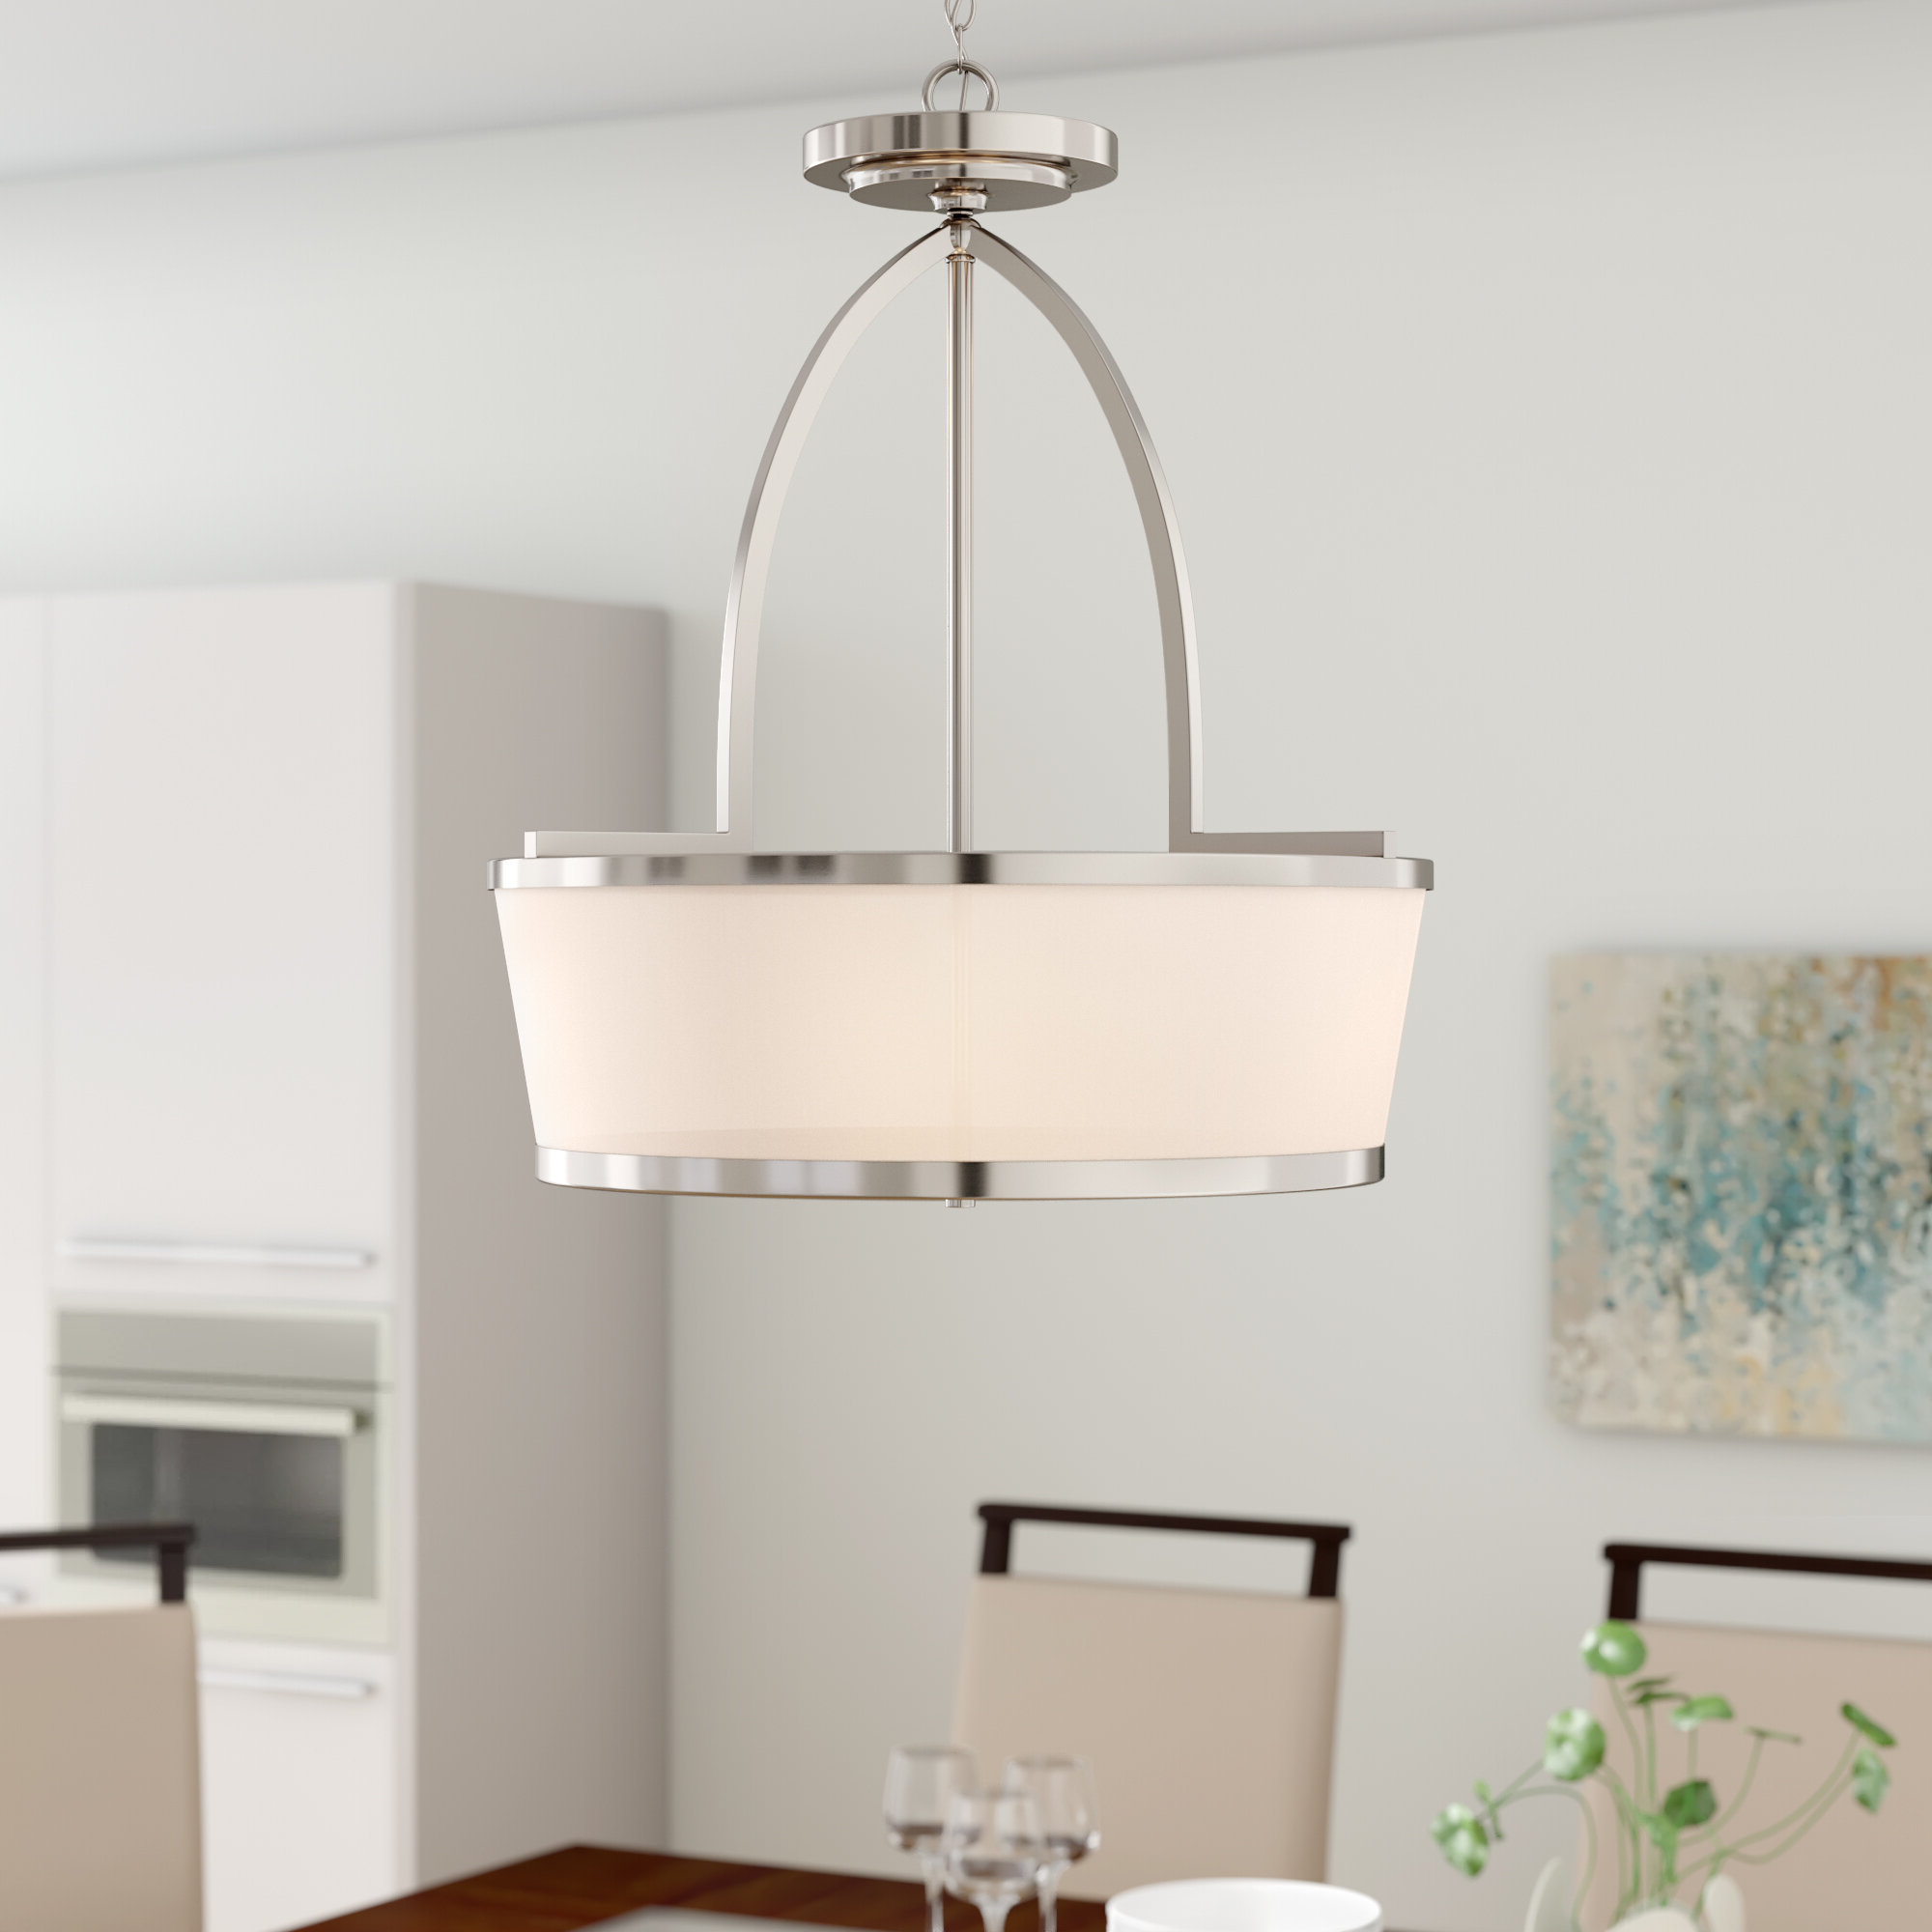 Newest Burslem 3 Light Single Drum Pendants Within Camacho 3 Light Single Drum Pendant (View 6 of 20)